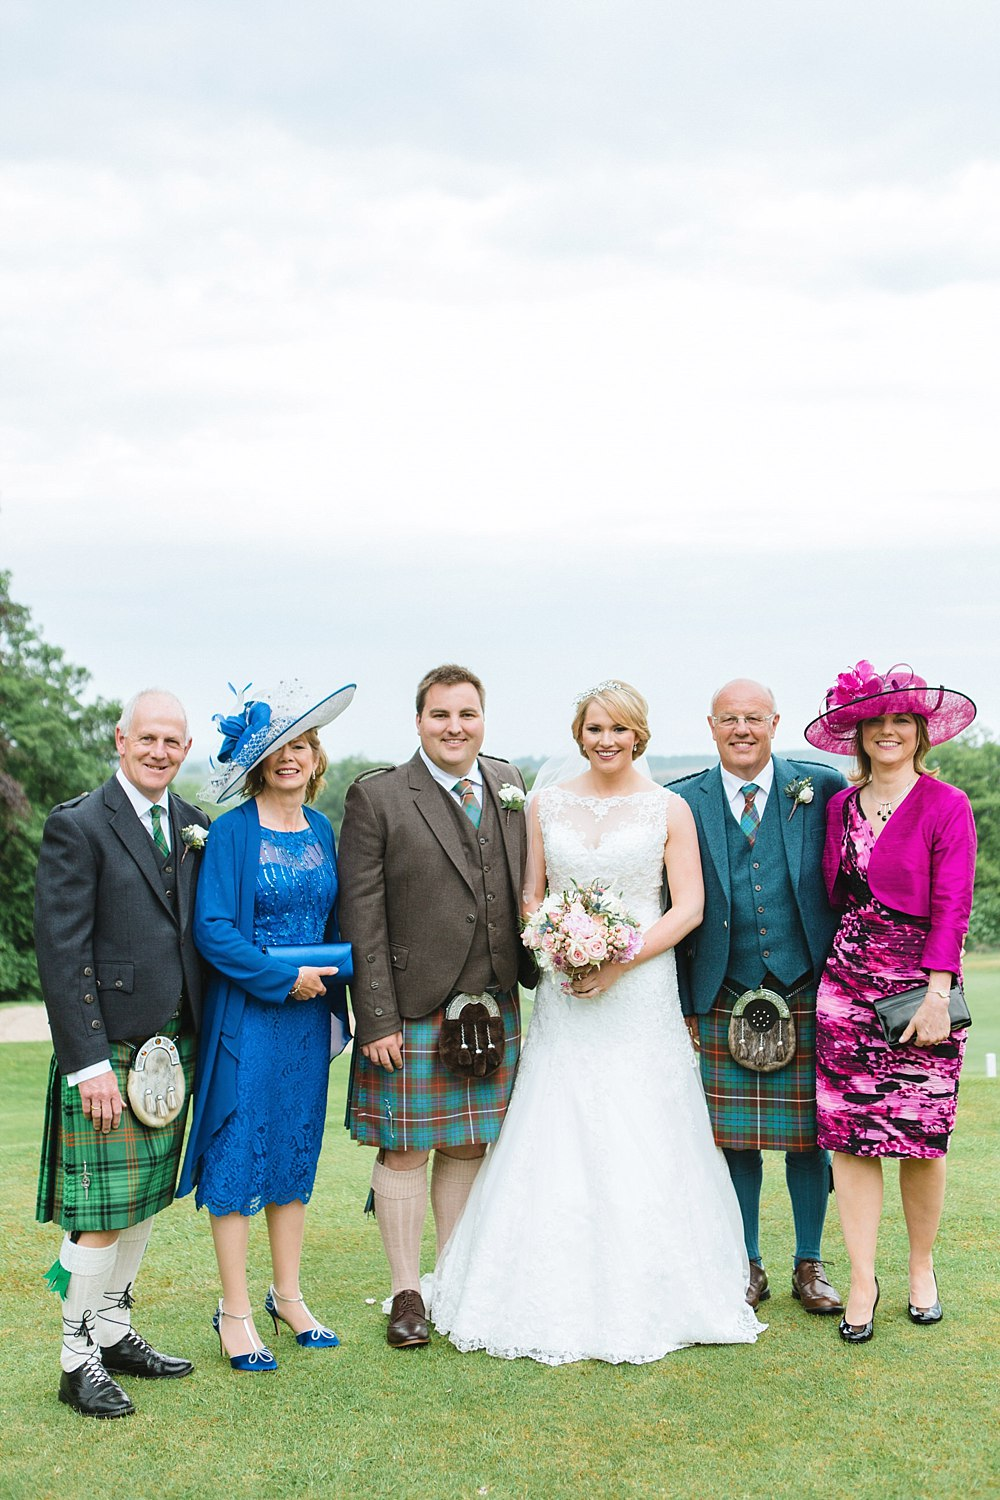 weddings elopements scotland The Gibsons 16-5.jpg